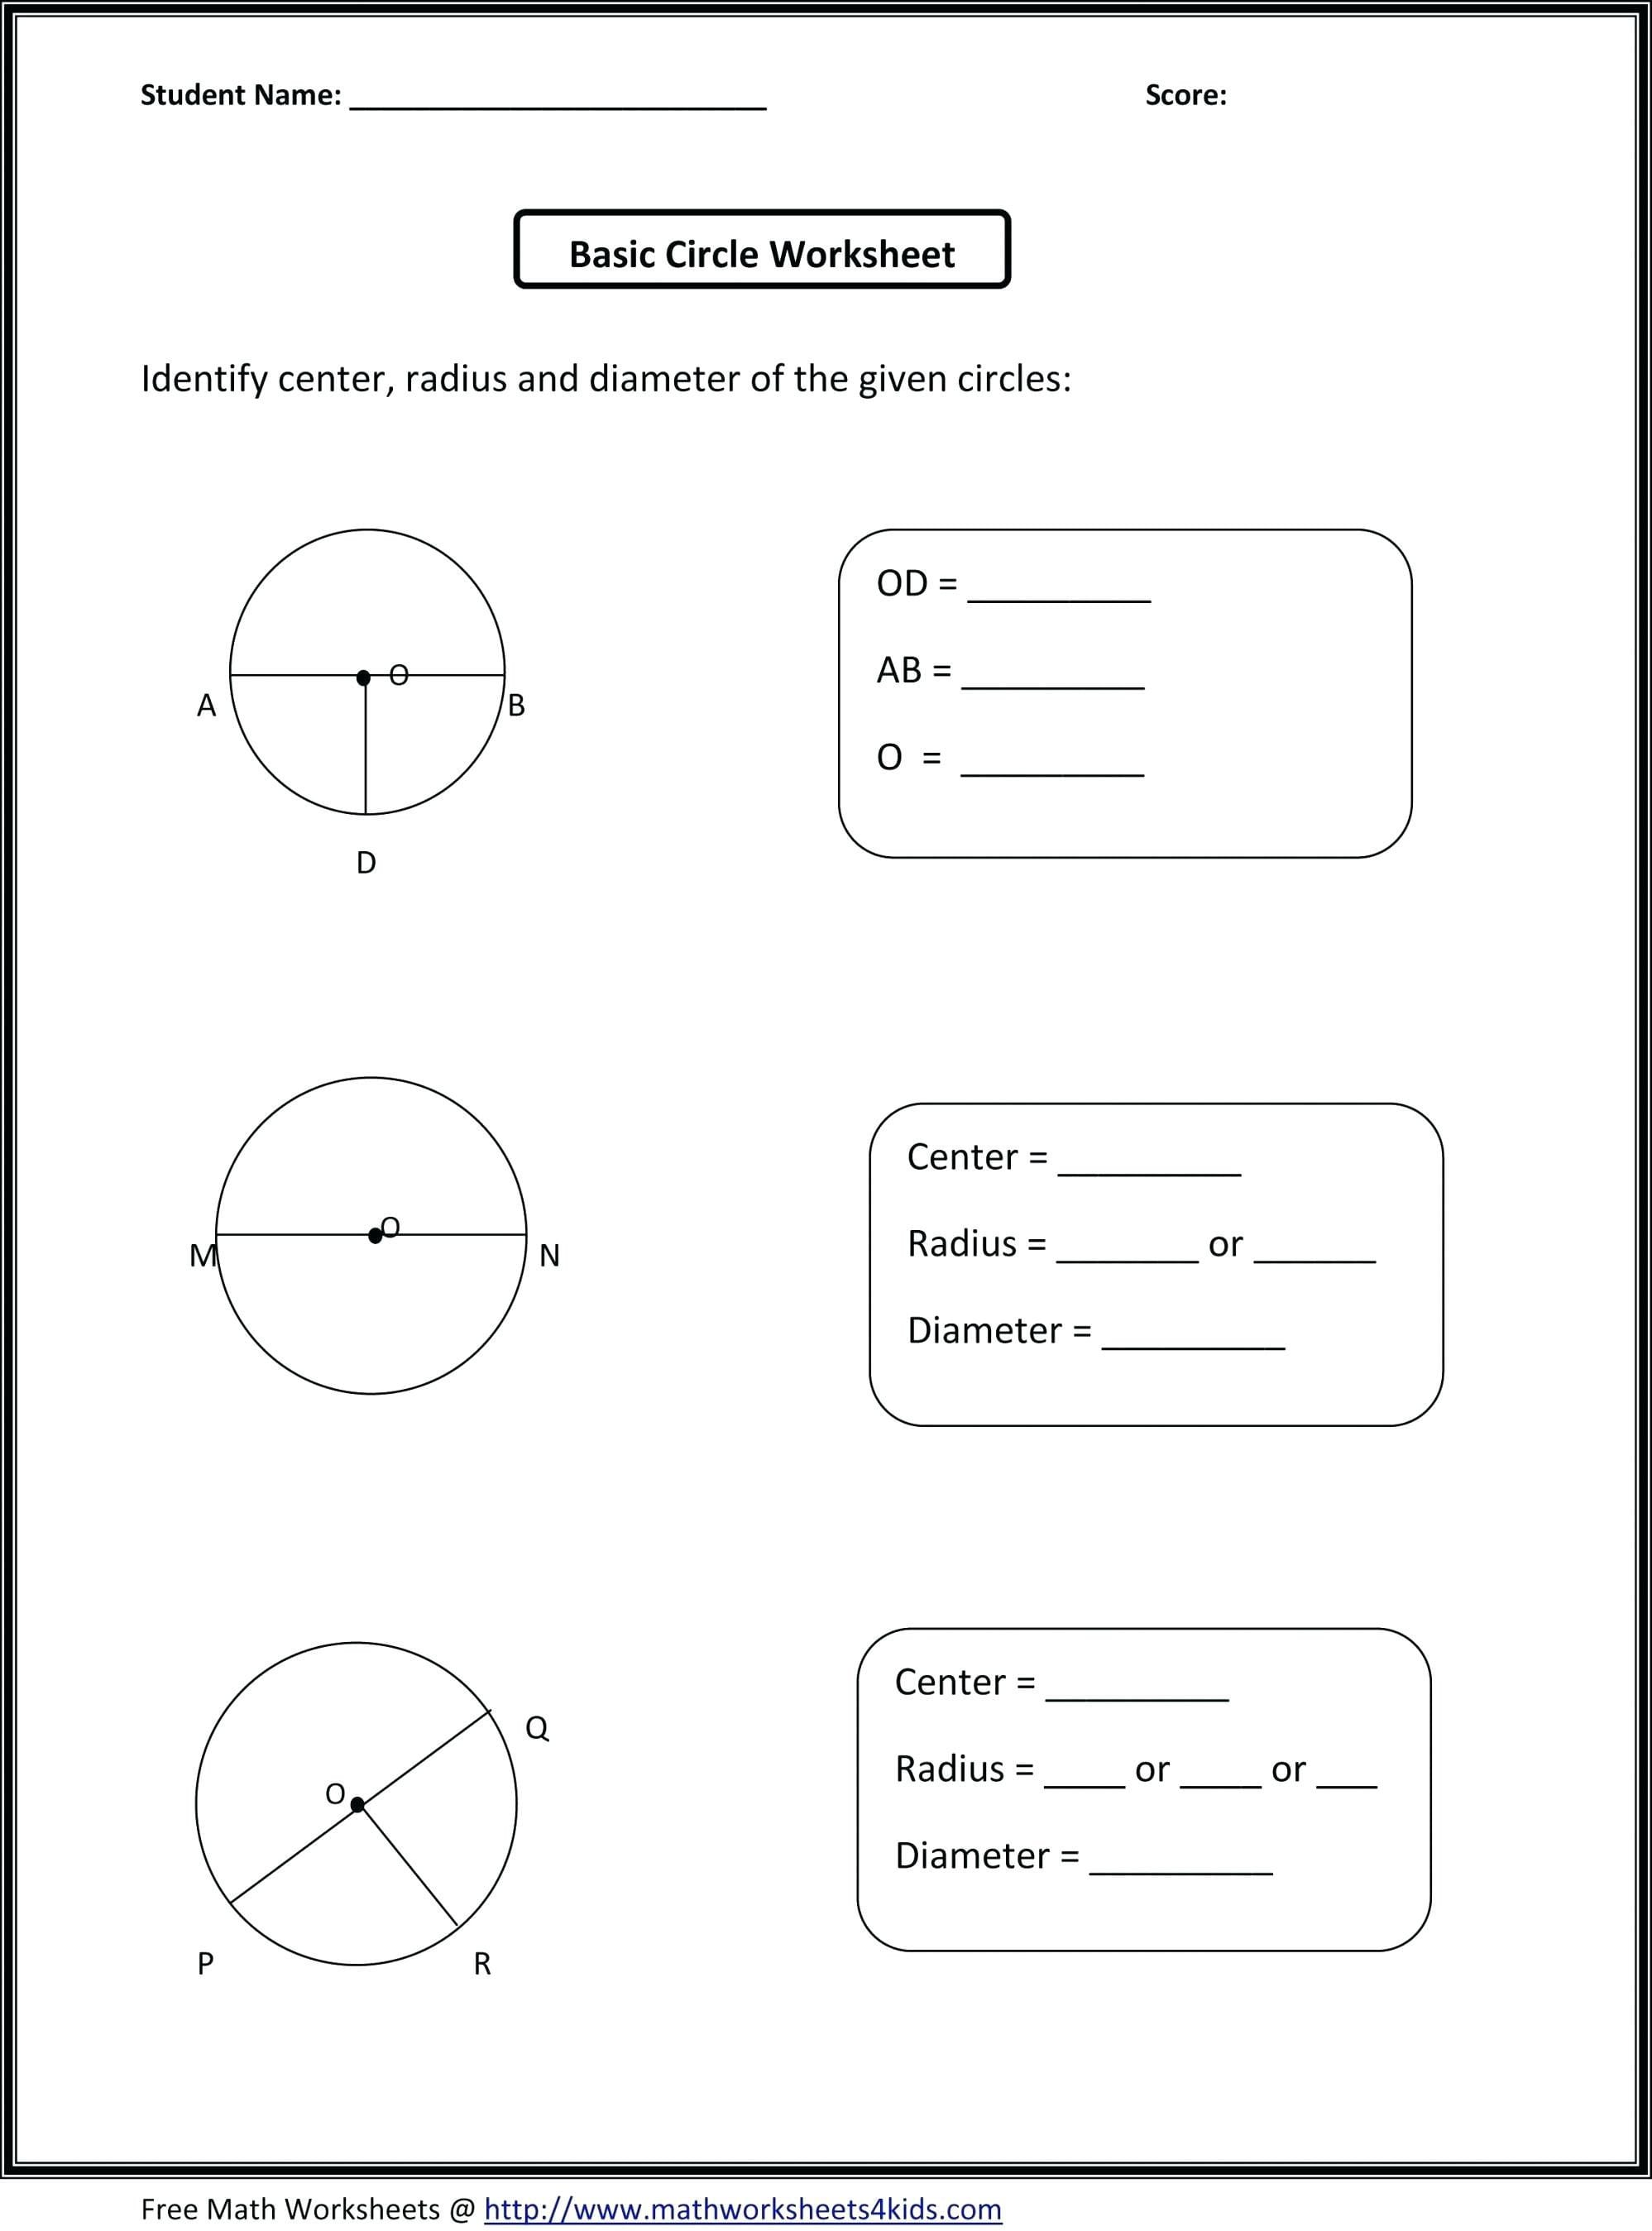 Cell Membrane Coloring Worksheet Jvzooreview